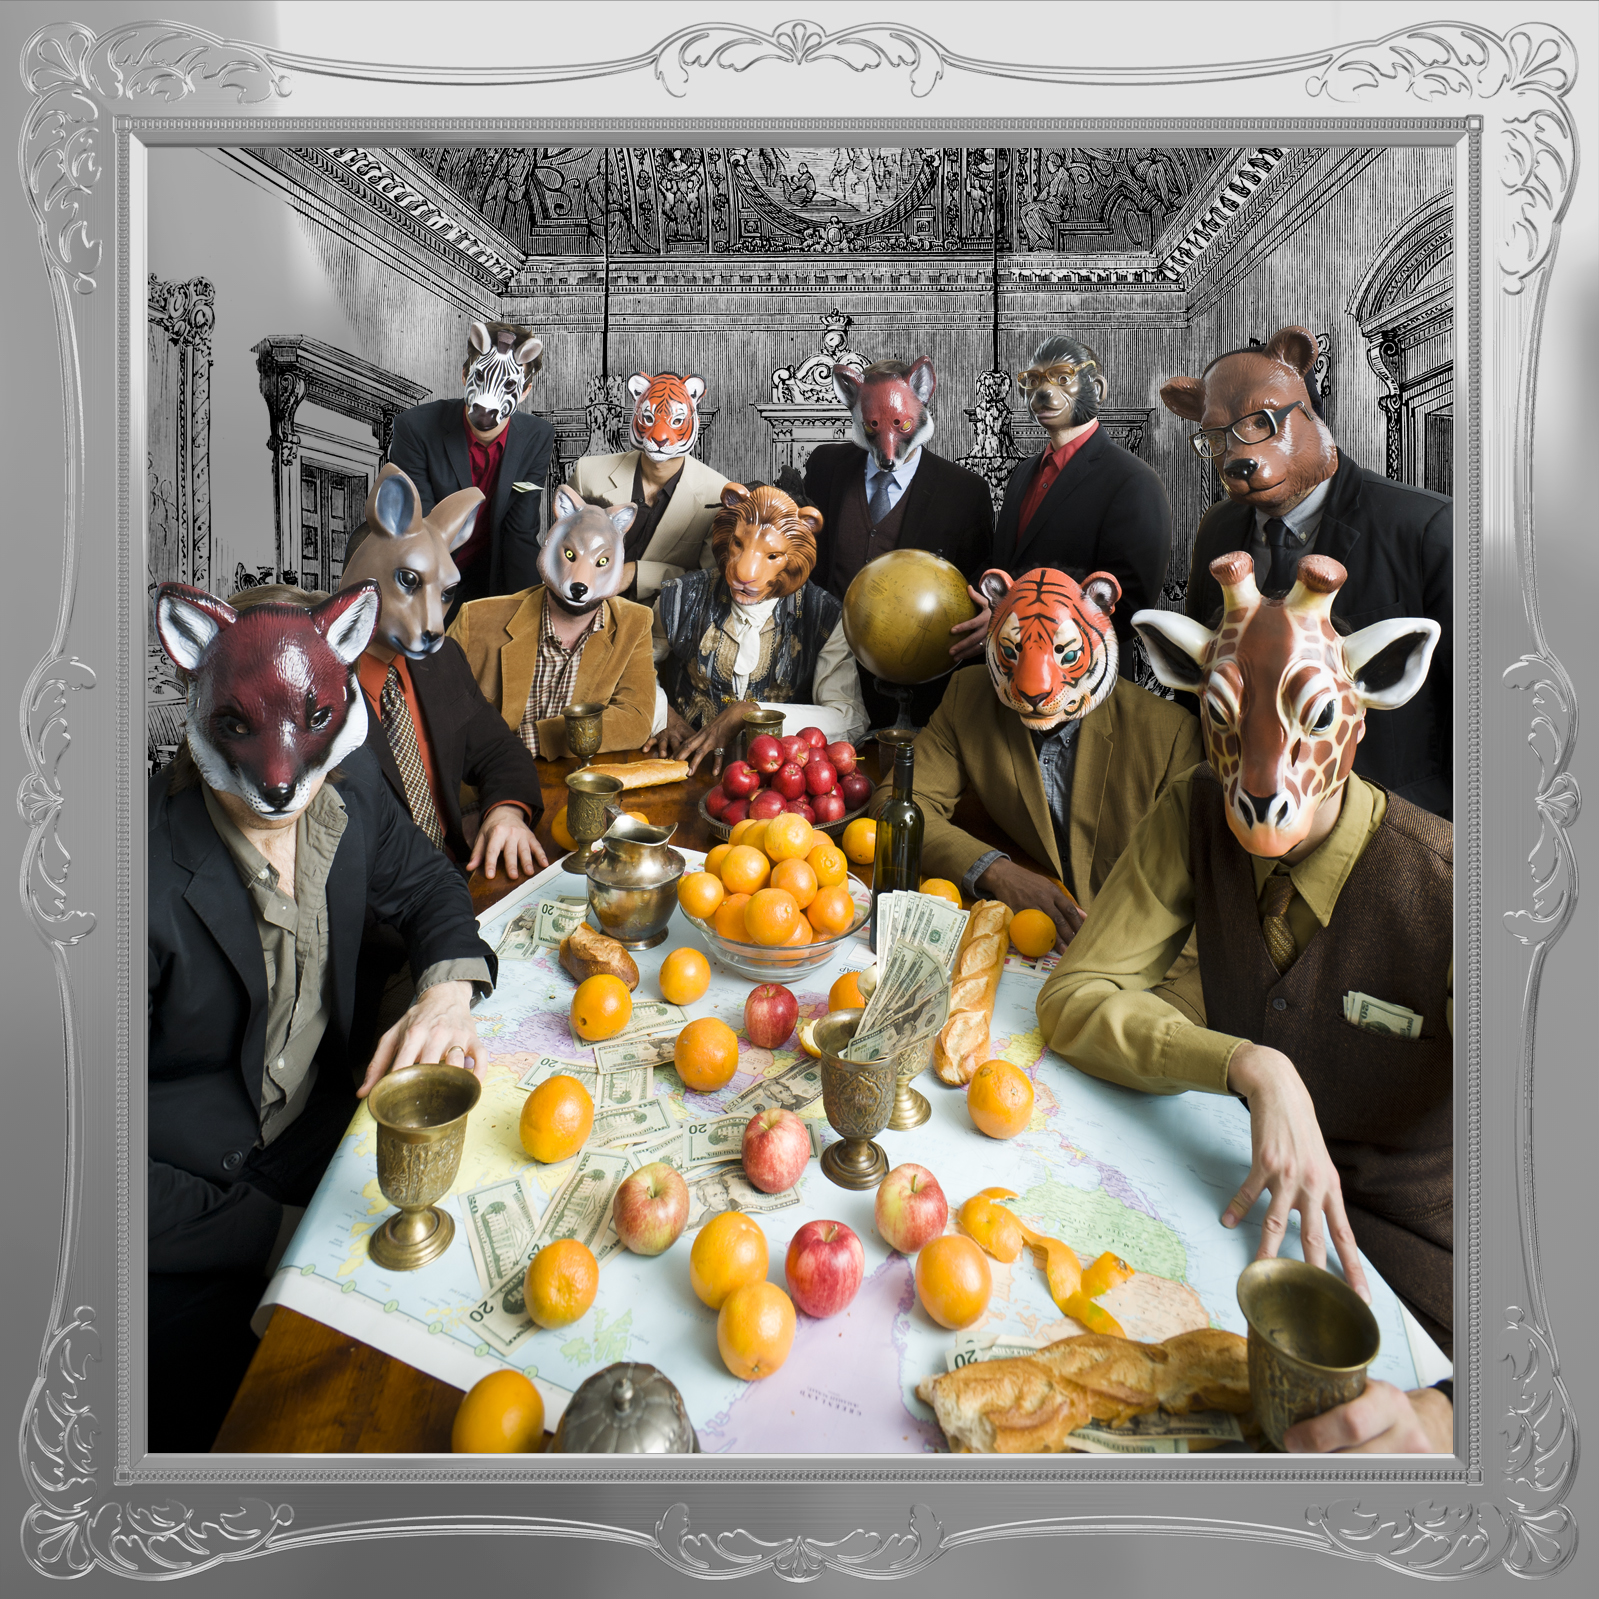 Antibalas by Antibalas